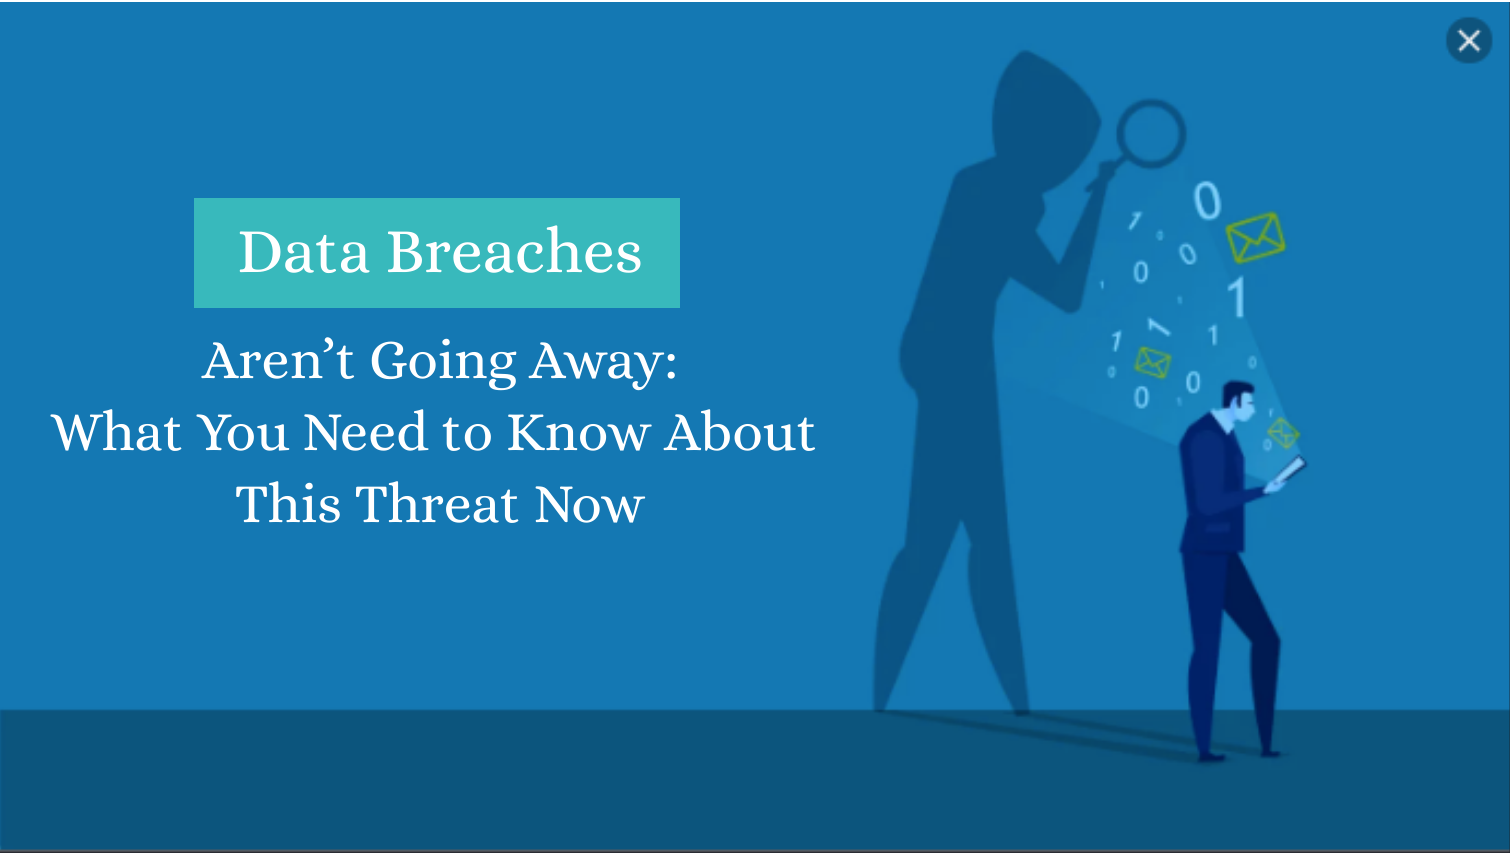 Data breaches - What you need to know about data breaches